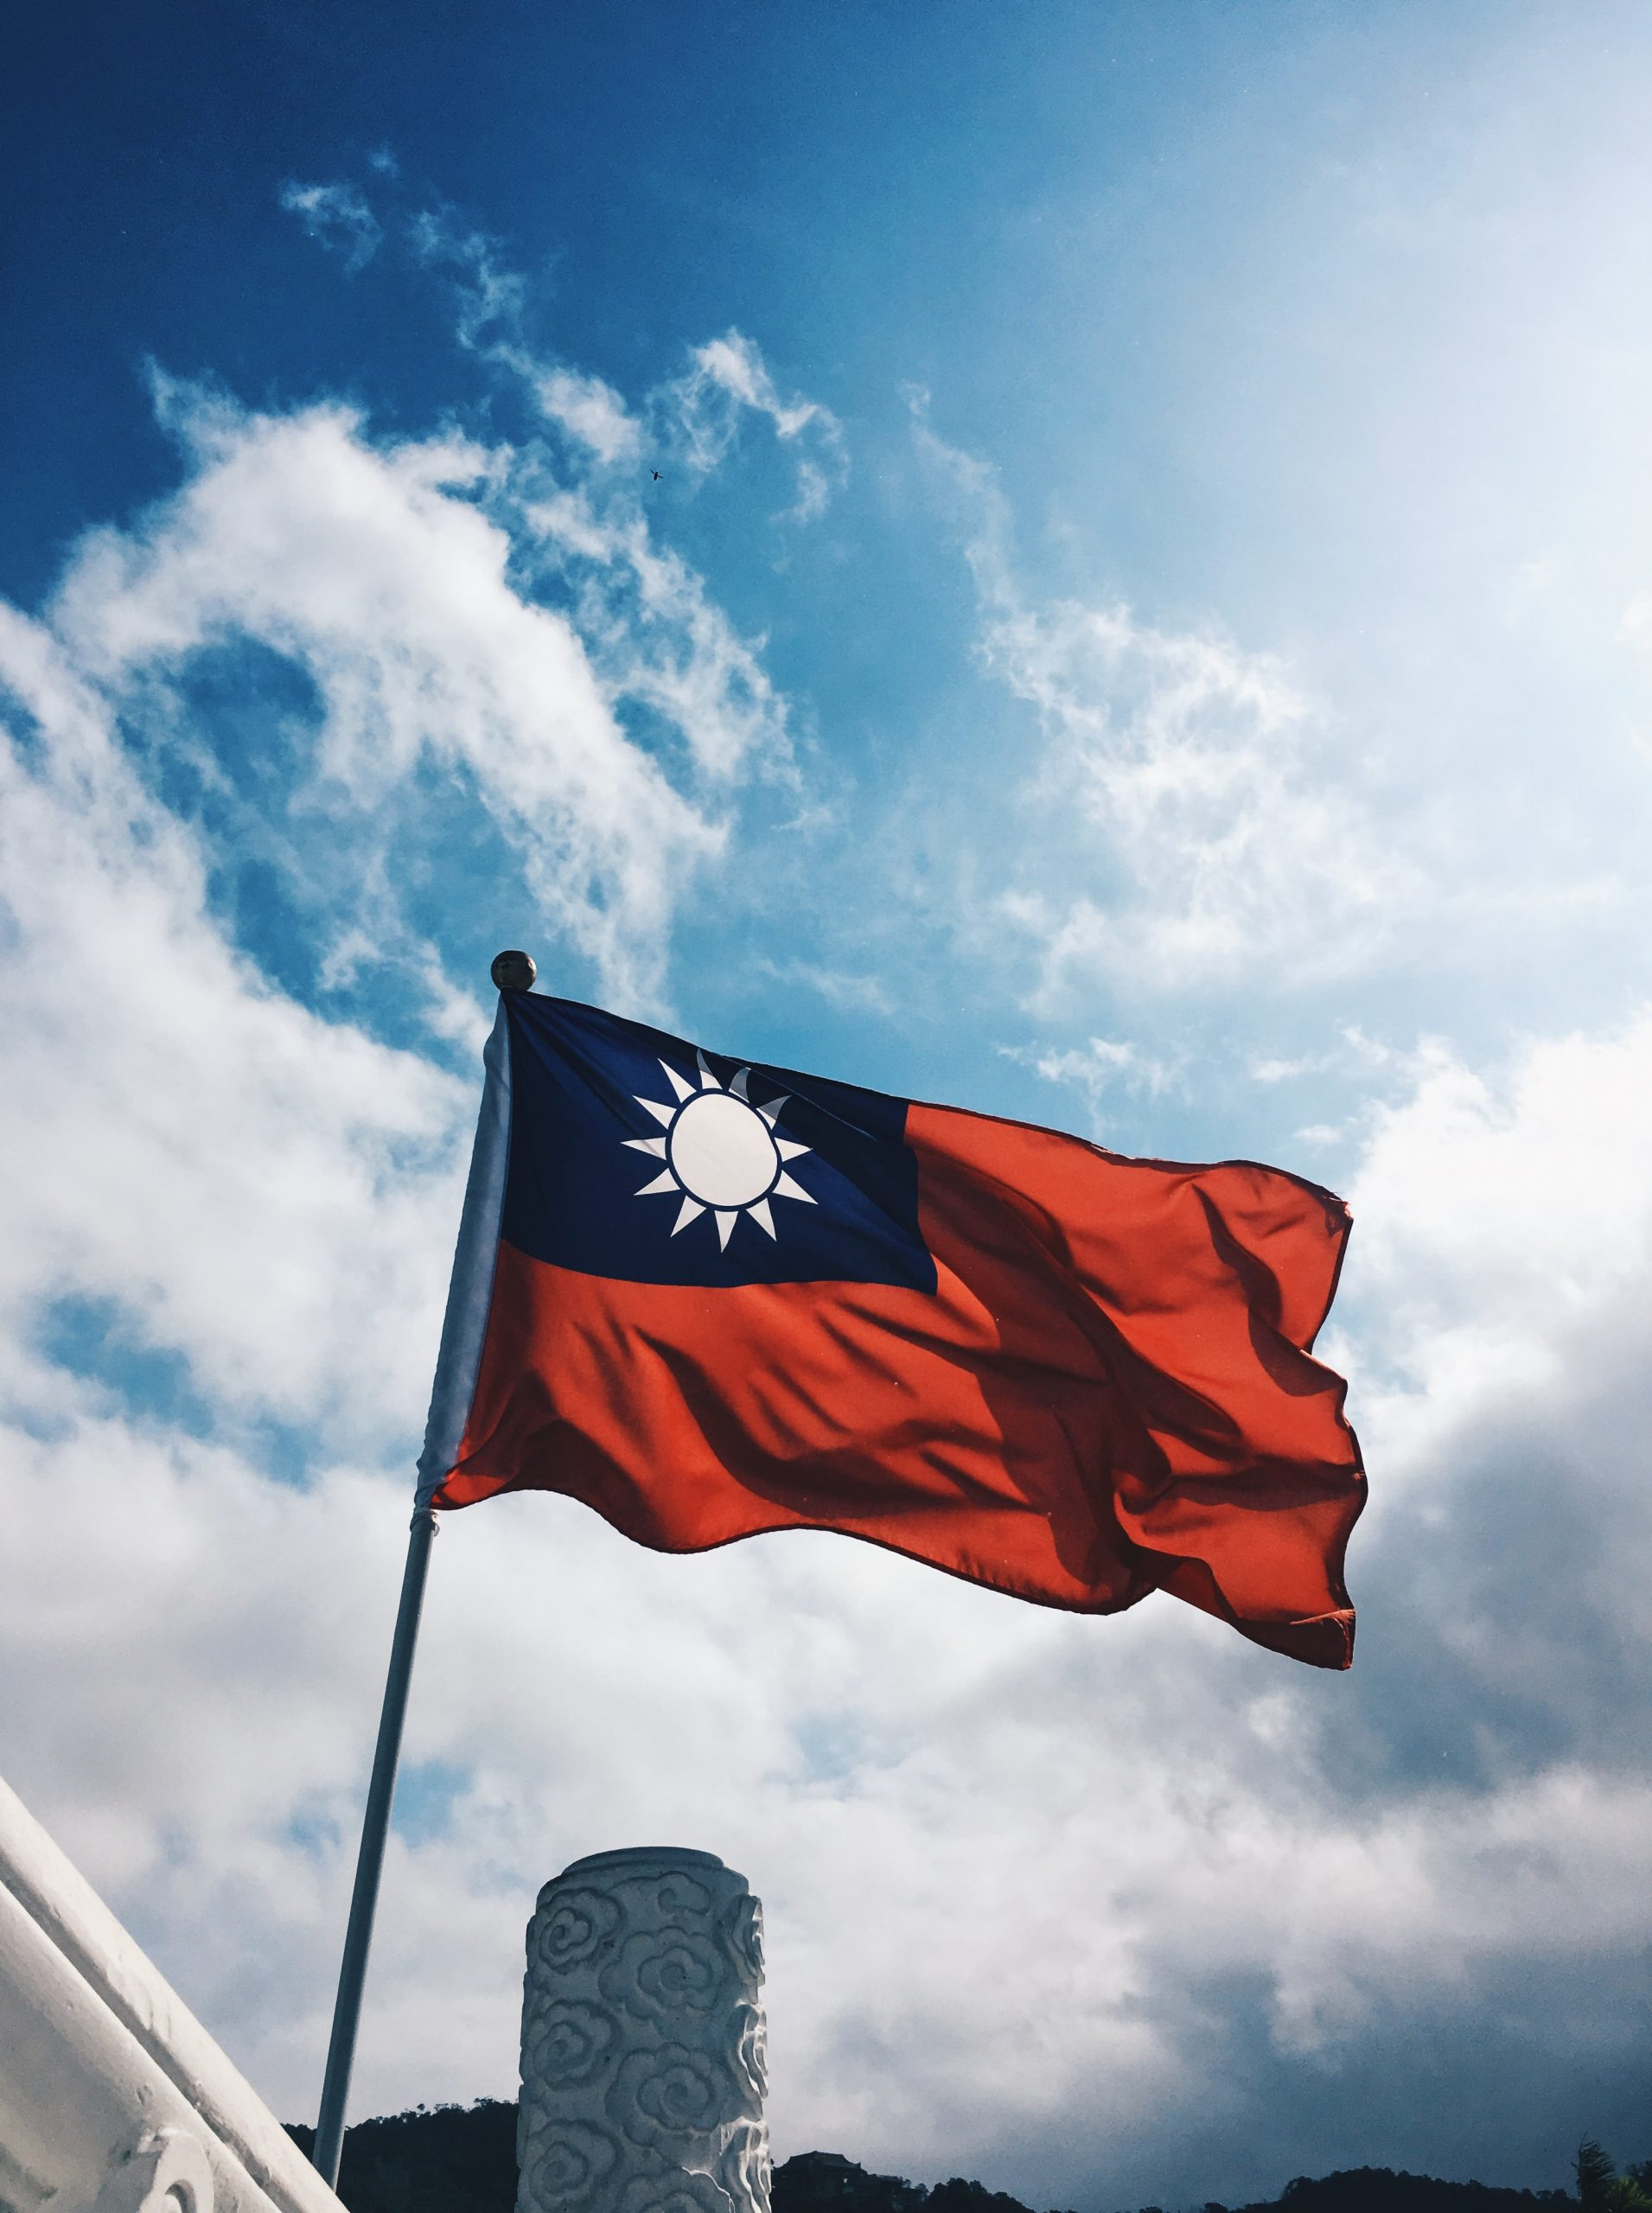 China / Taiwan Relations Worsen: What This Means for Global Supply Chains